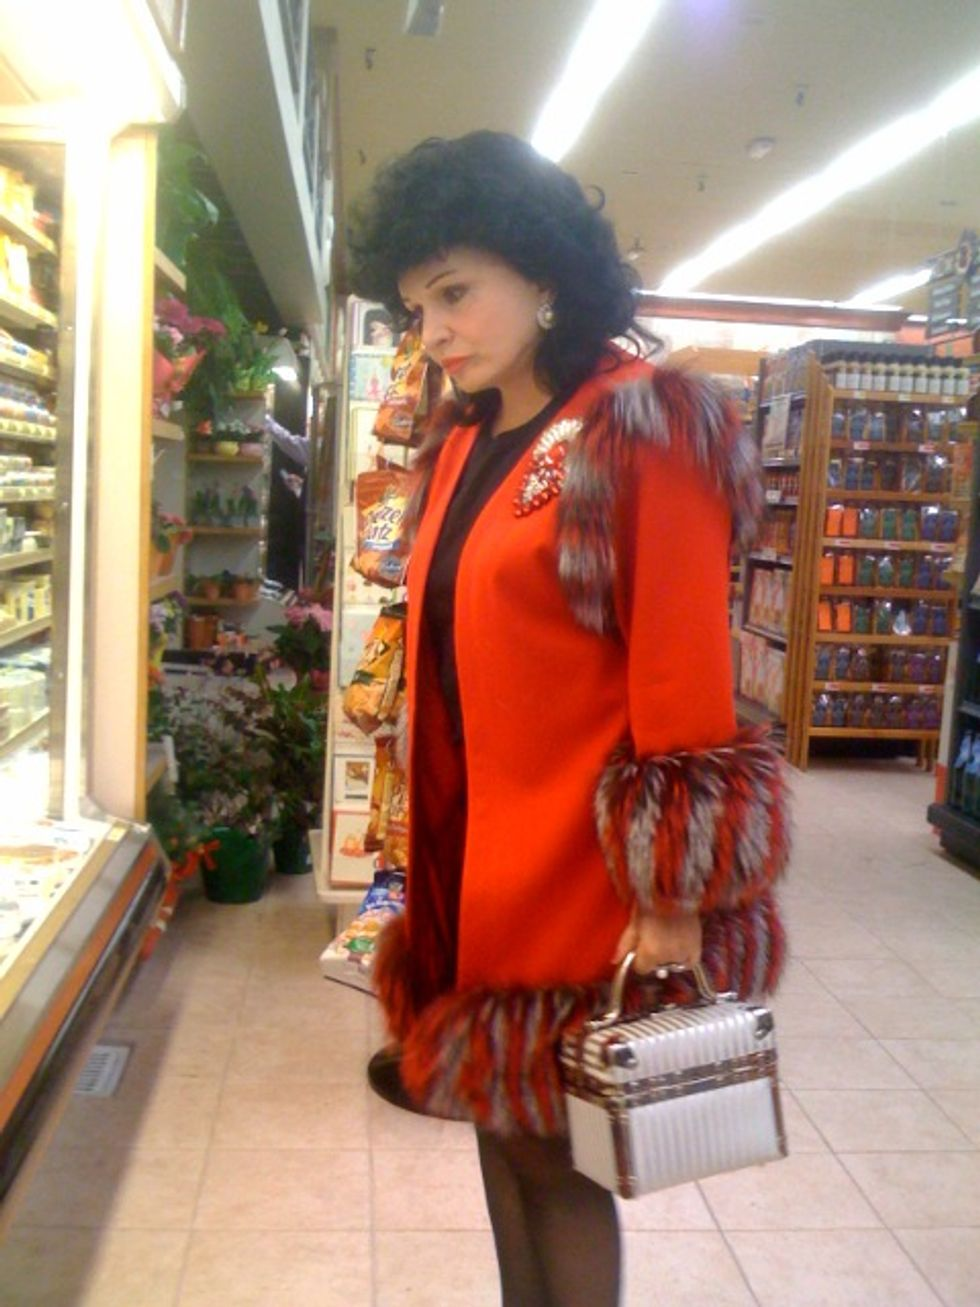 Afternoon Style in an L.A. Supermarket